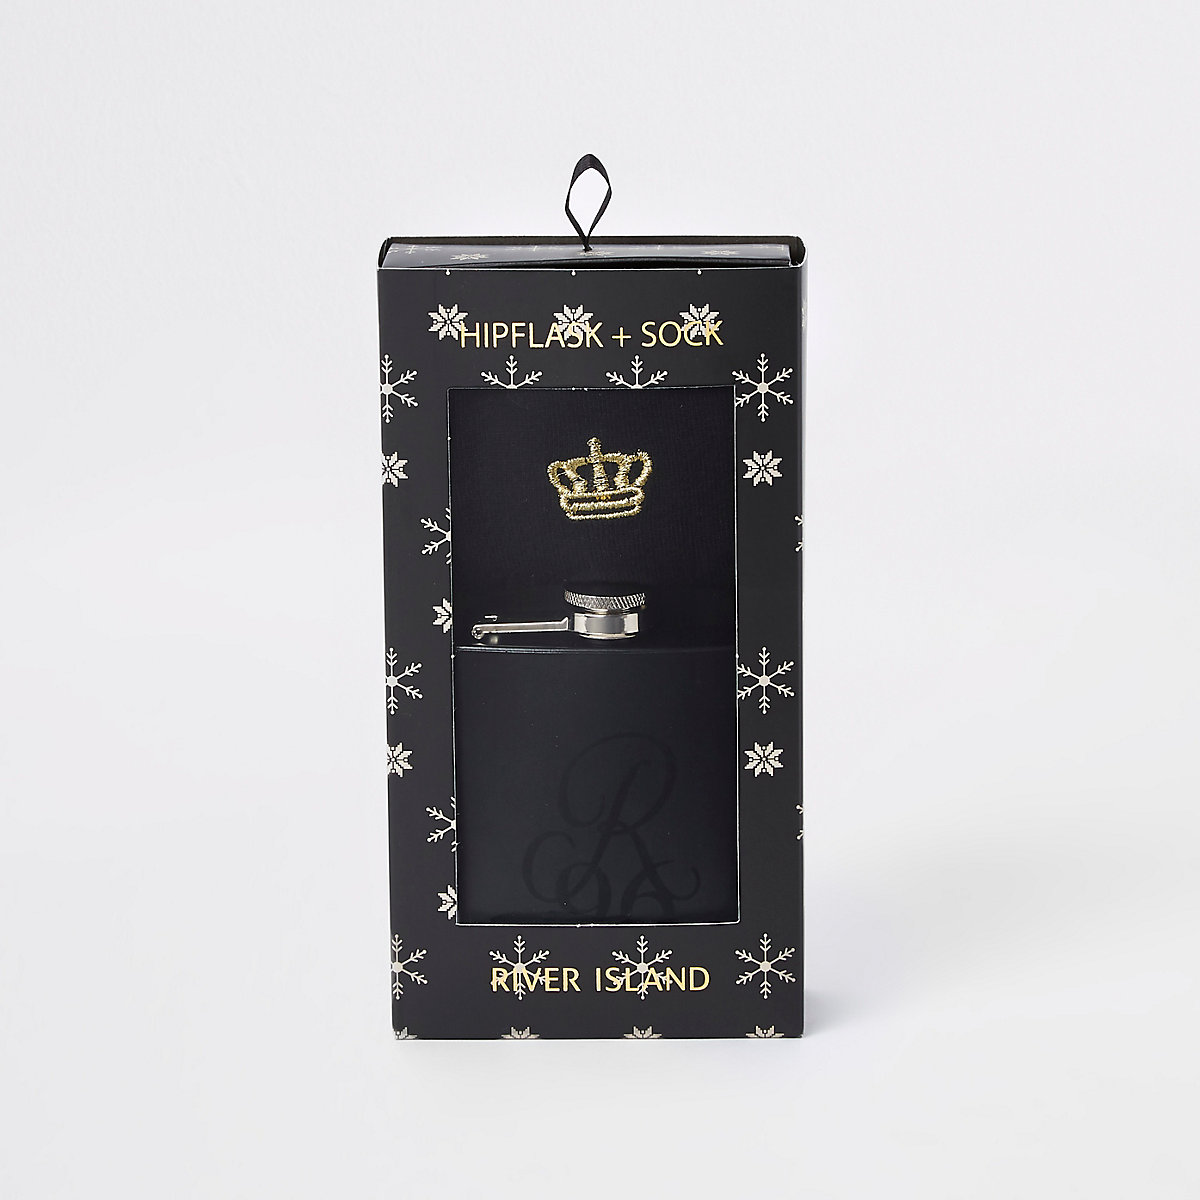 Black 'R96' hip flask and sock set